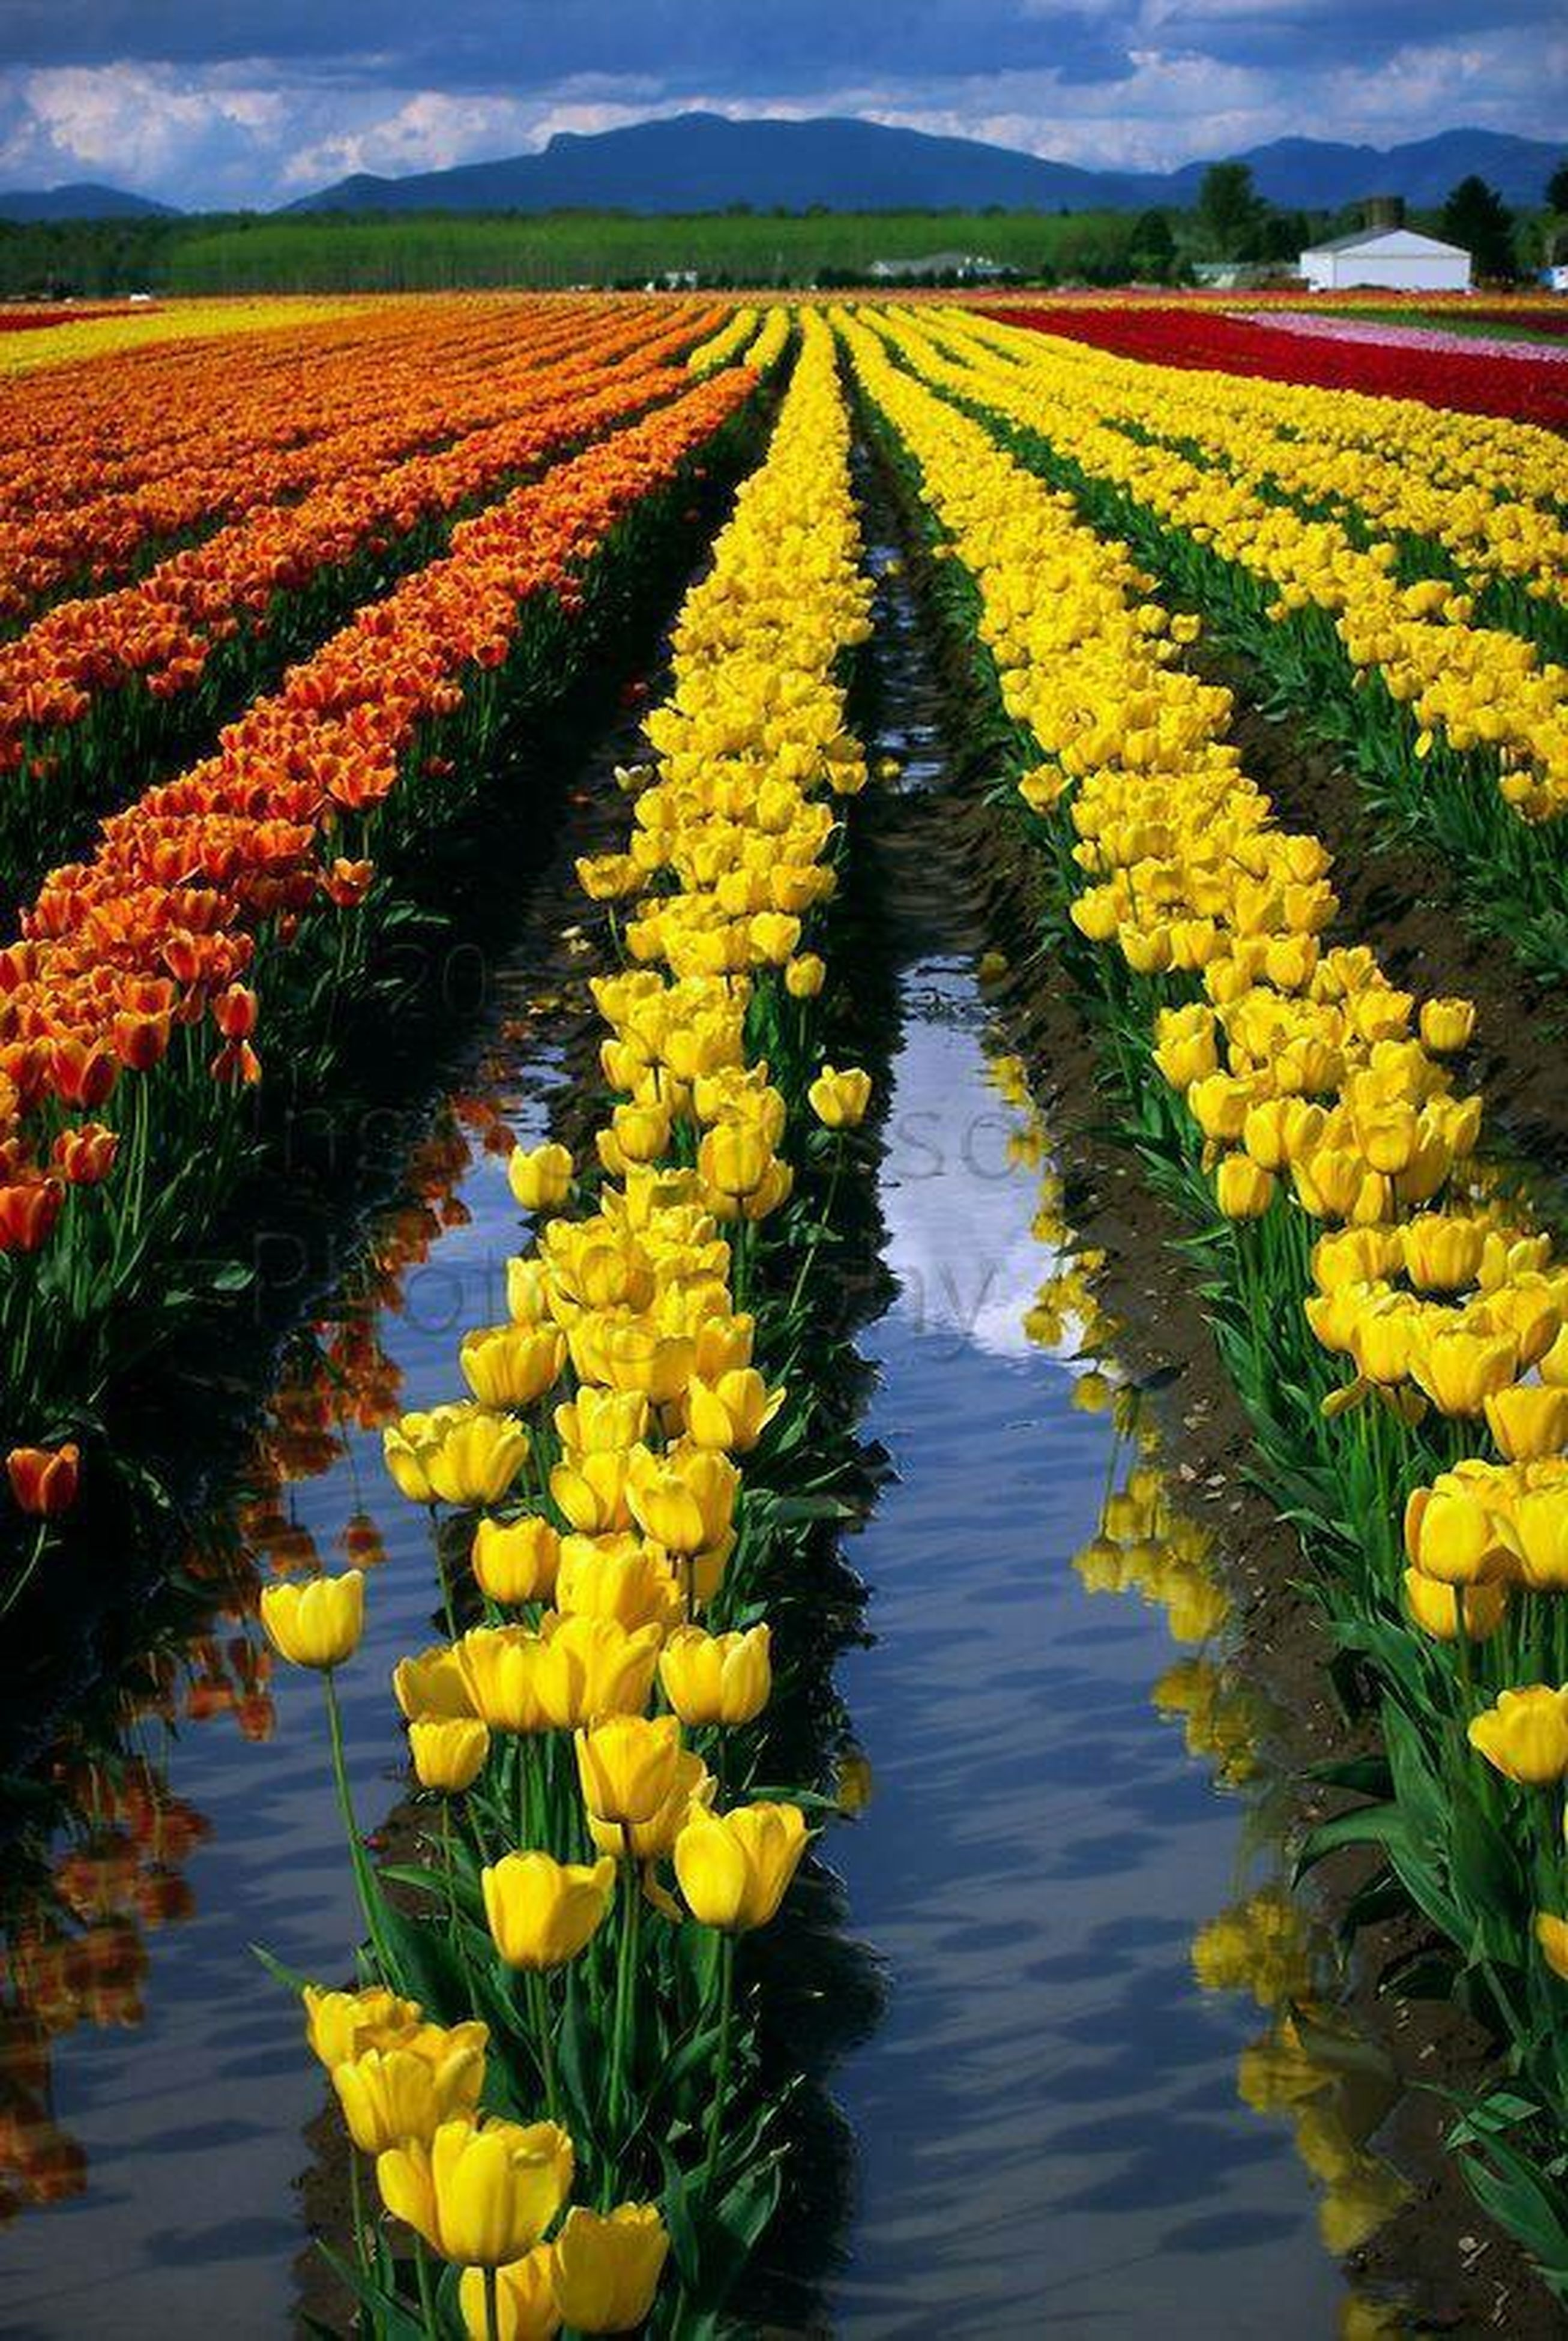 water, yellow, flower, beauty in nature, growth, rural scene, nature, diminishing perspective, the way forward, agriculture, tranquil scene, tranquility, sky, freshness, scenics, field, plant, vanishing point, transportation, lake